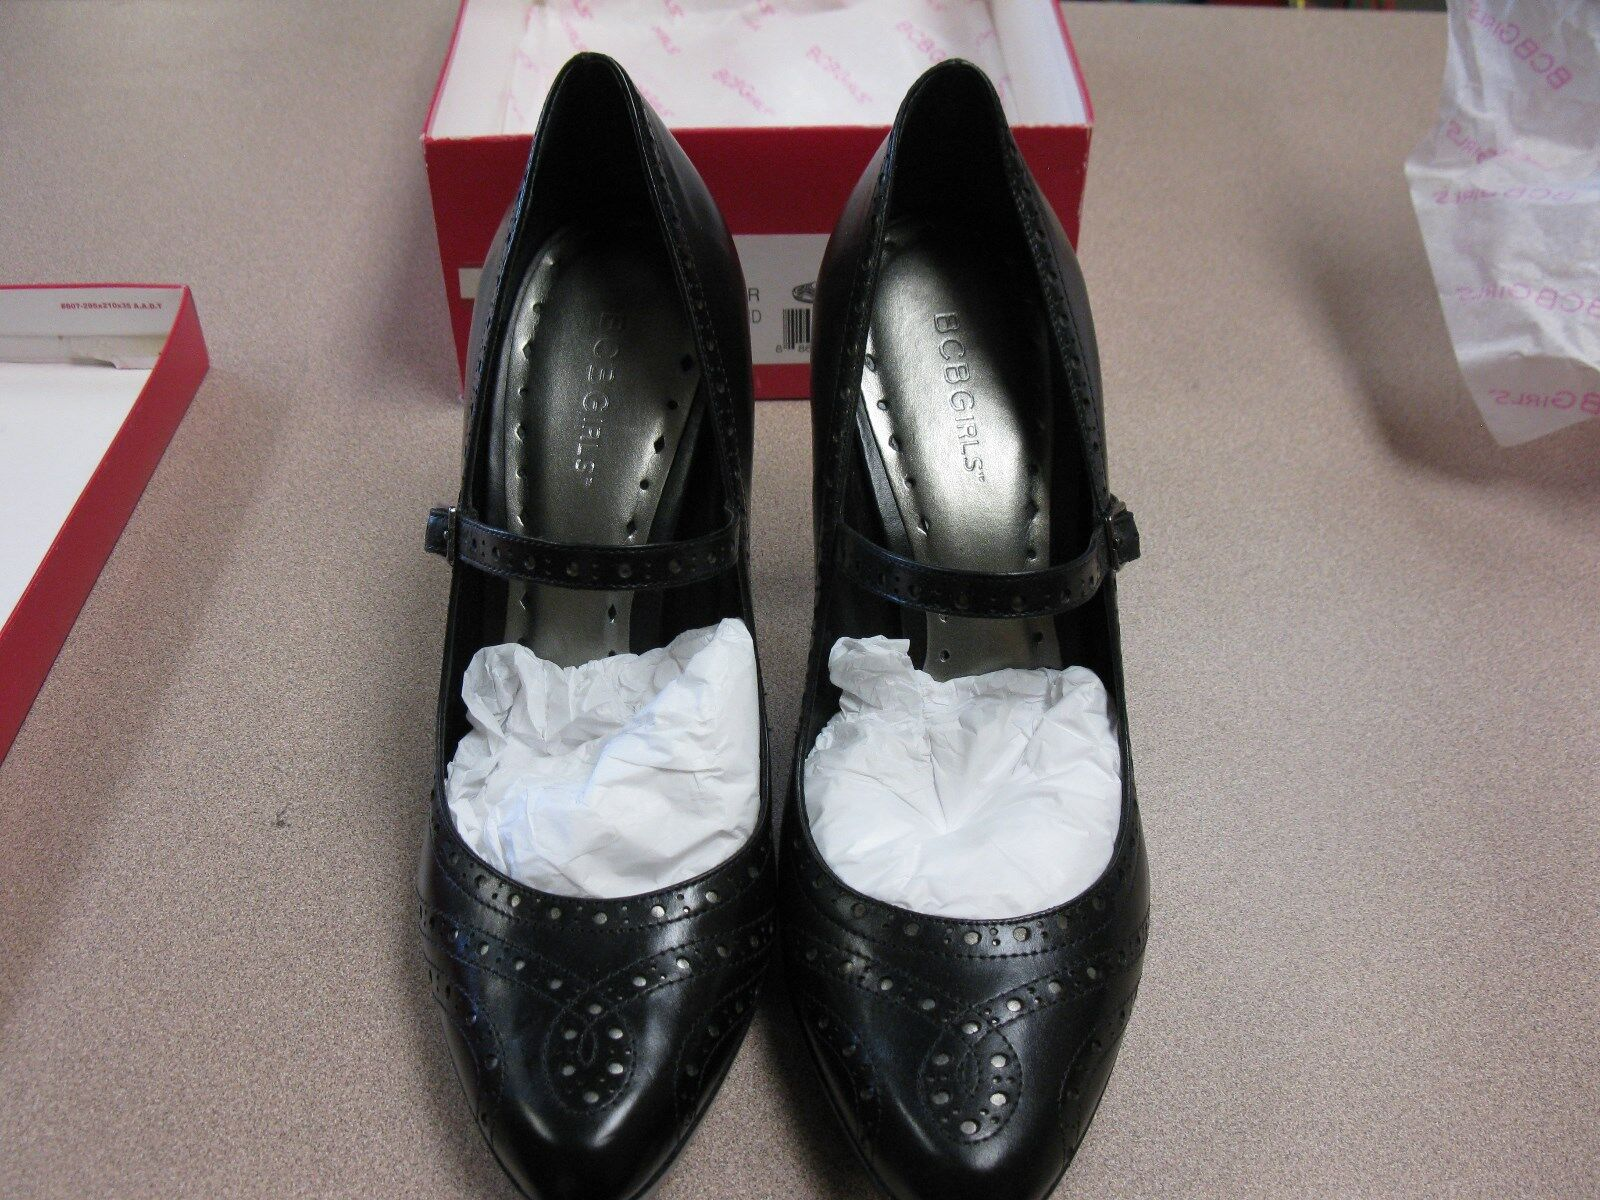 BCB Girls Womens shoes Black High Heels Strap Leather size 10